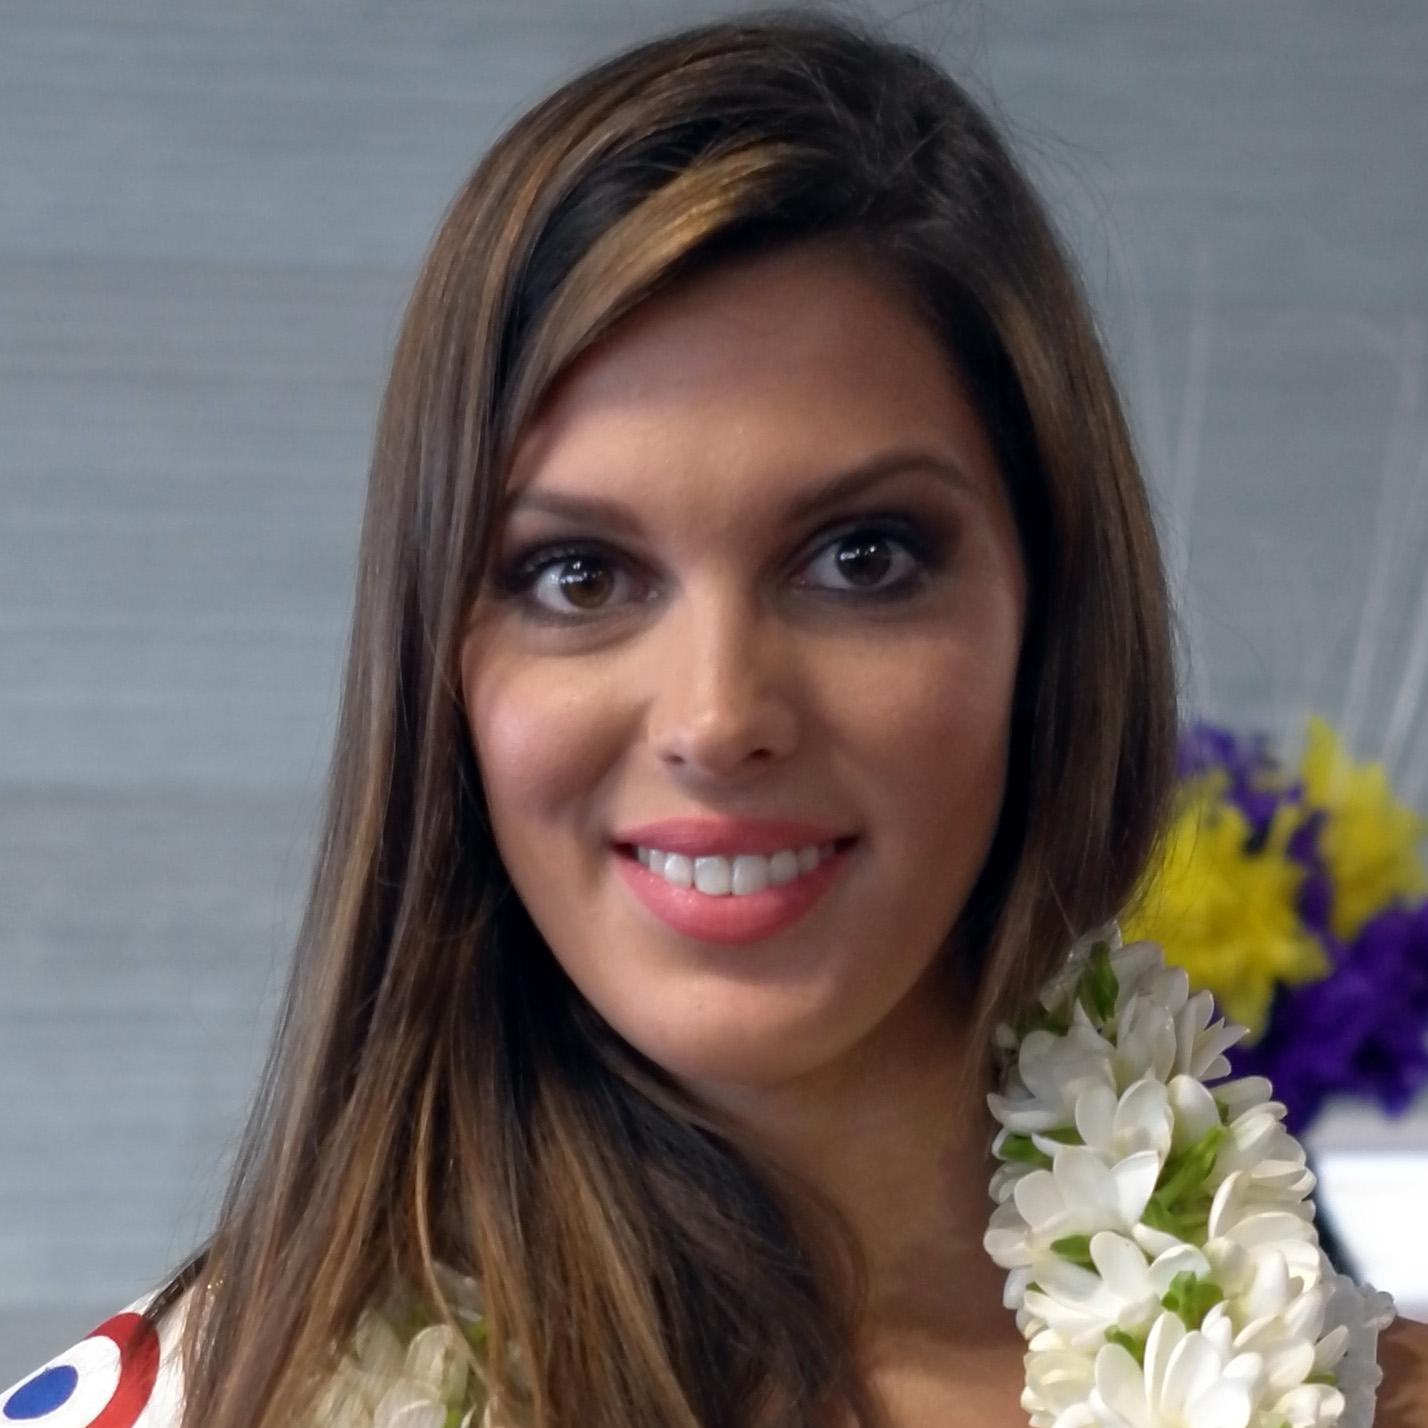 Iris Mittenaere Bio, Net Worth, Facts